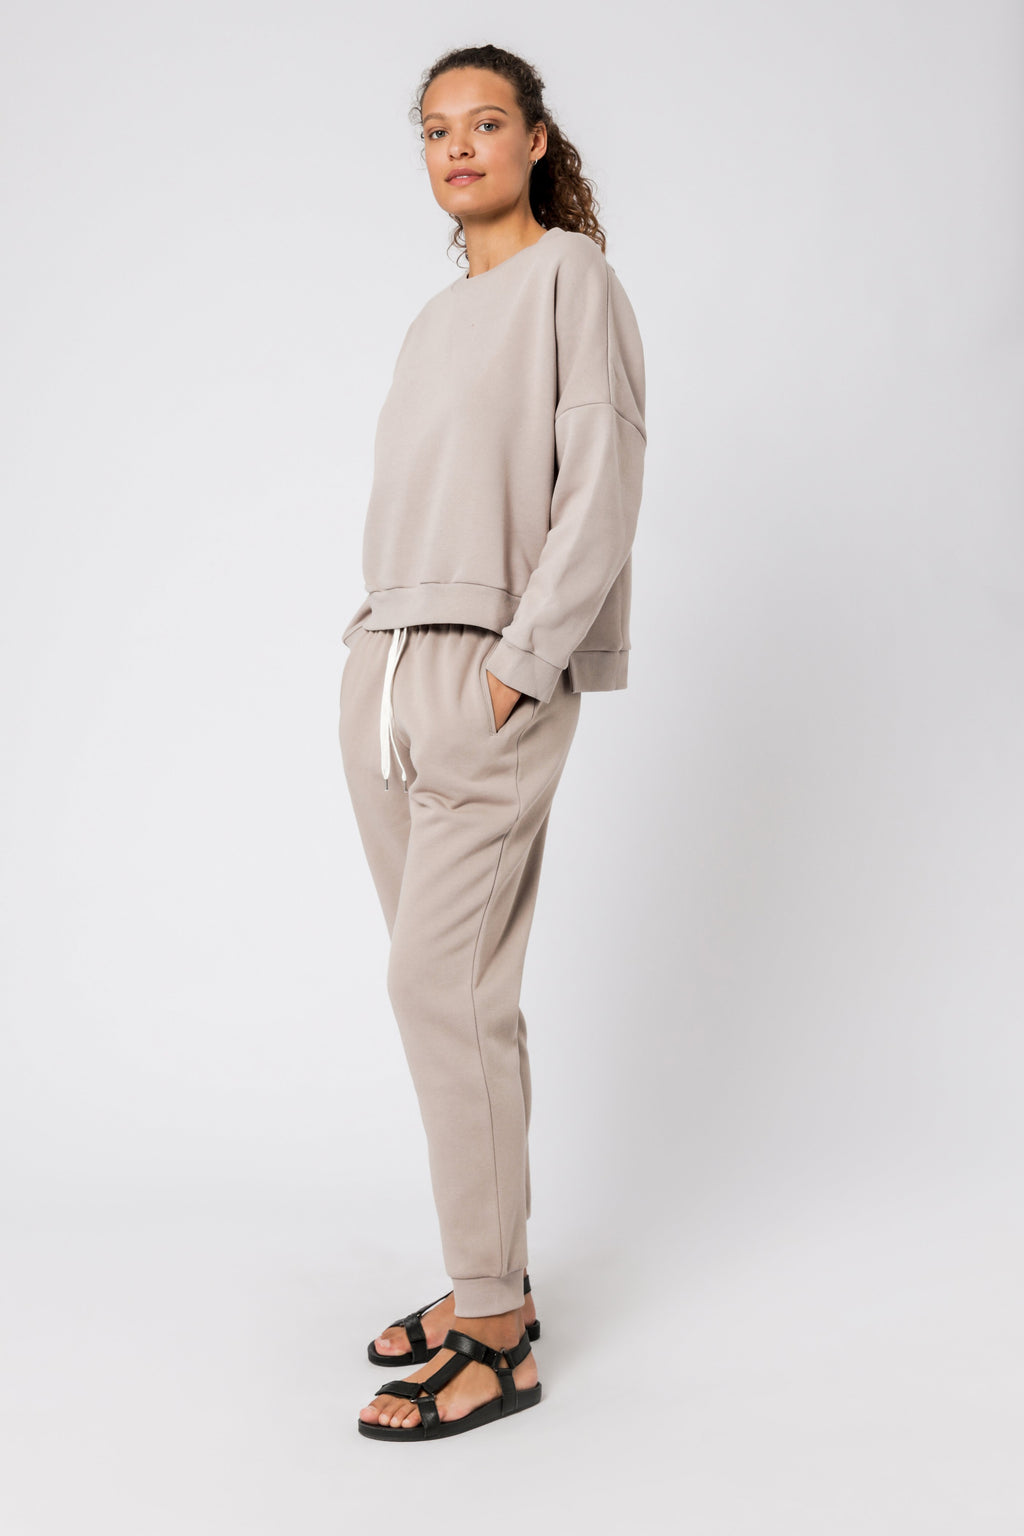 Nude Lucy Carter oversized sweat